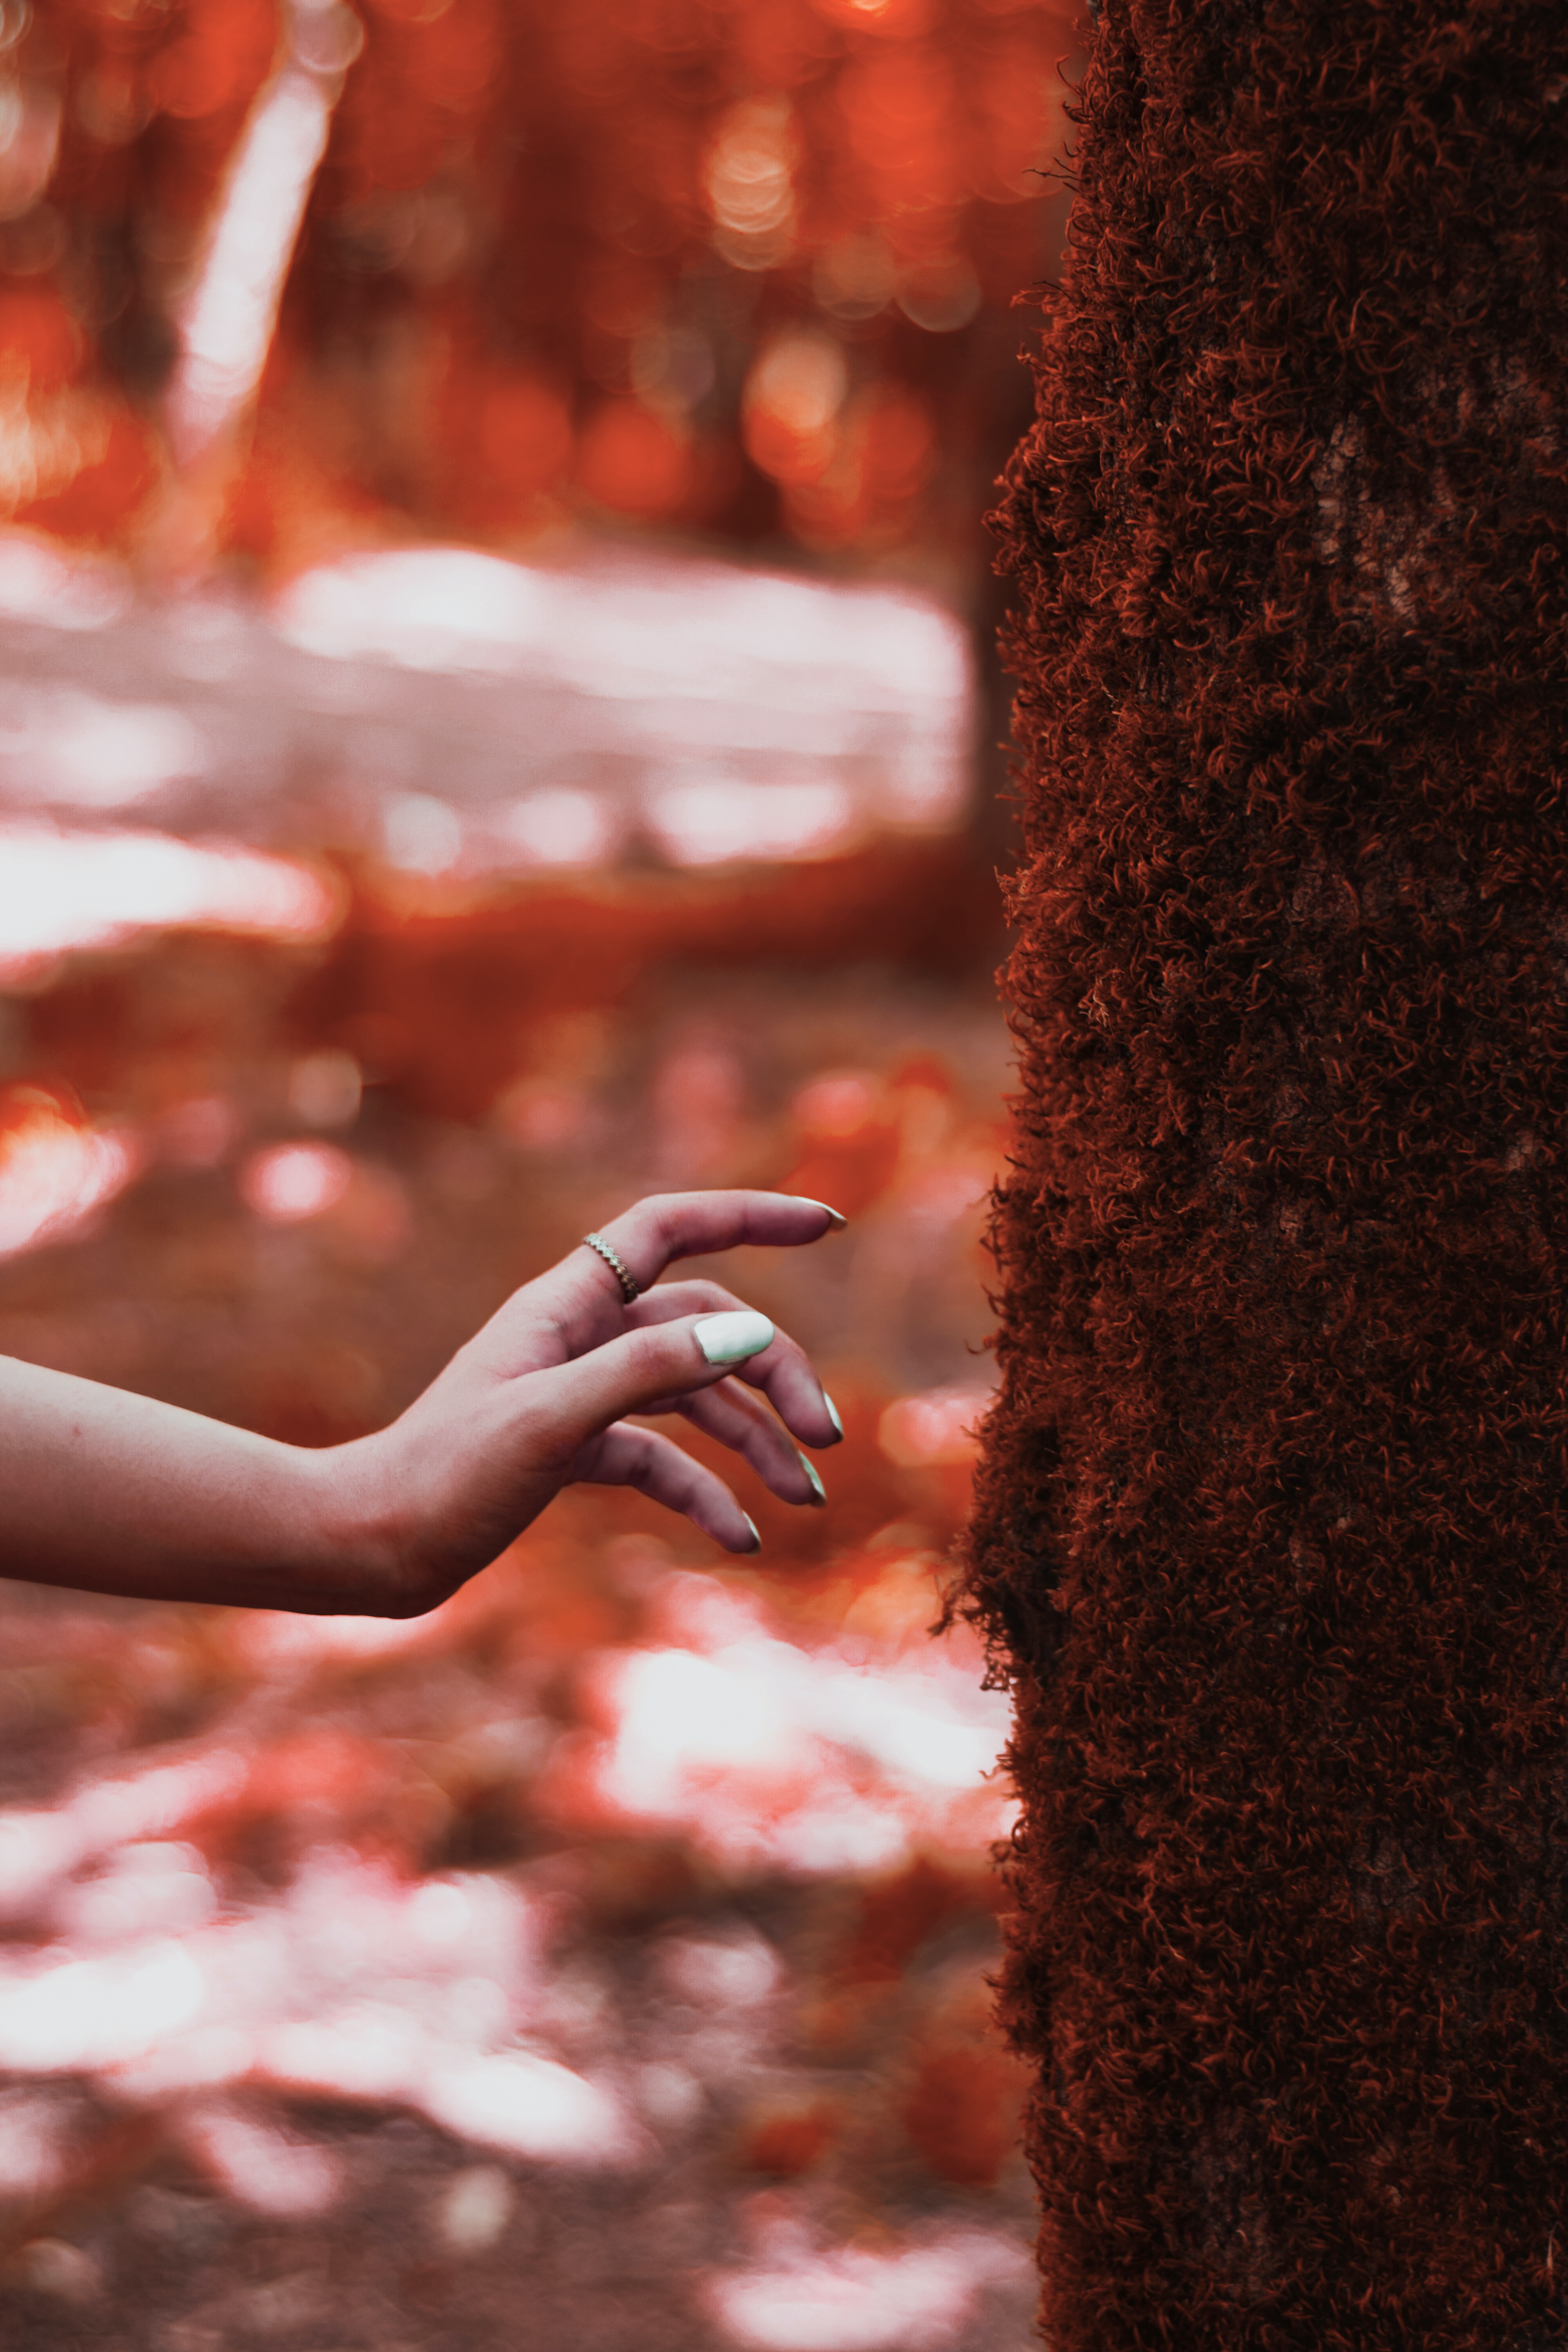 126205 Screensavers and Wallpapers Hand for phone. Download Miscellanea, Miscellaneous, Hand, Wood, Tree, Moss, Touching, Touch pictures for free